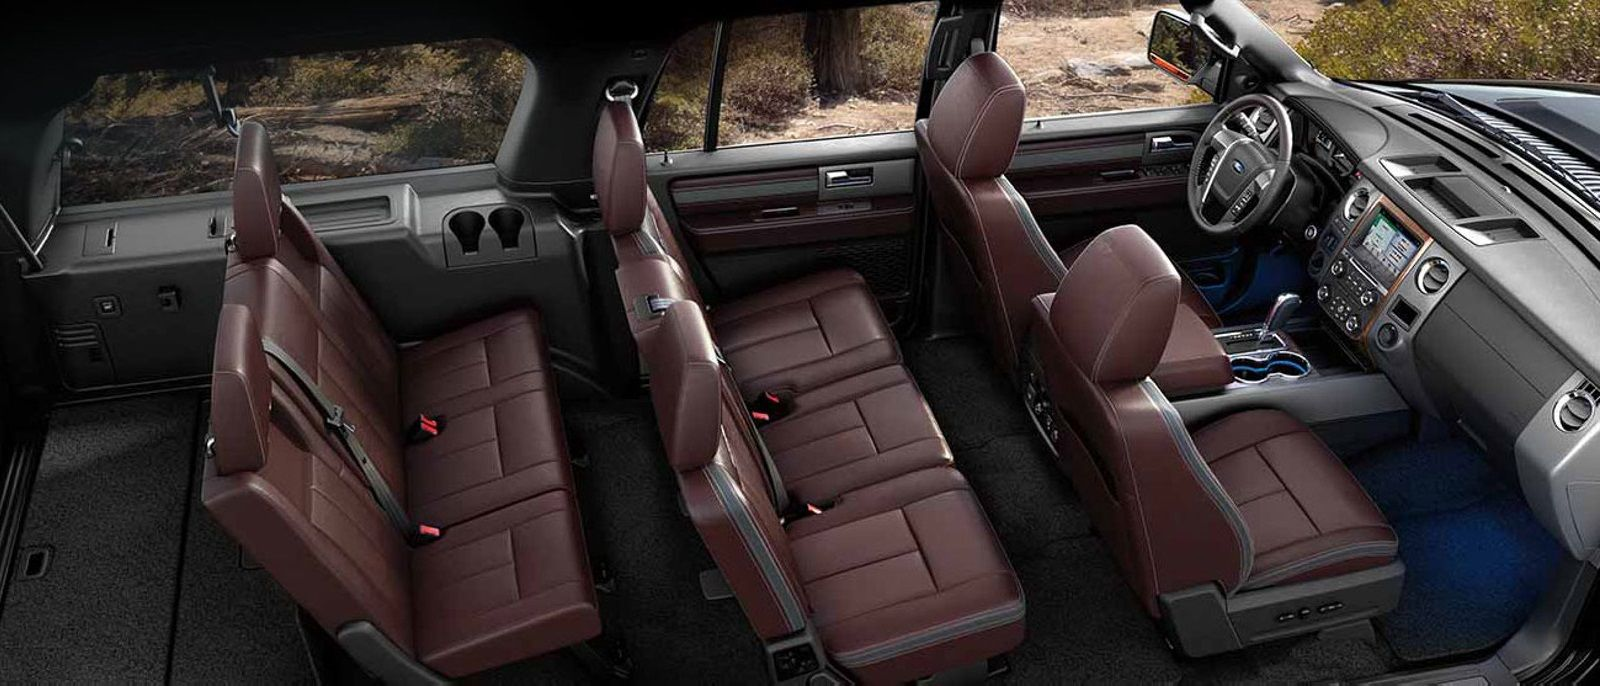 2017 Ford Expedition Overview The News Wheel In 2020 Ford